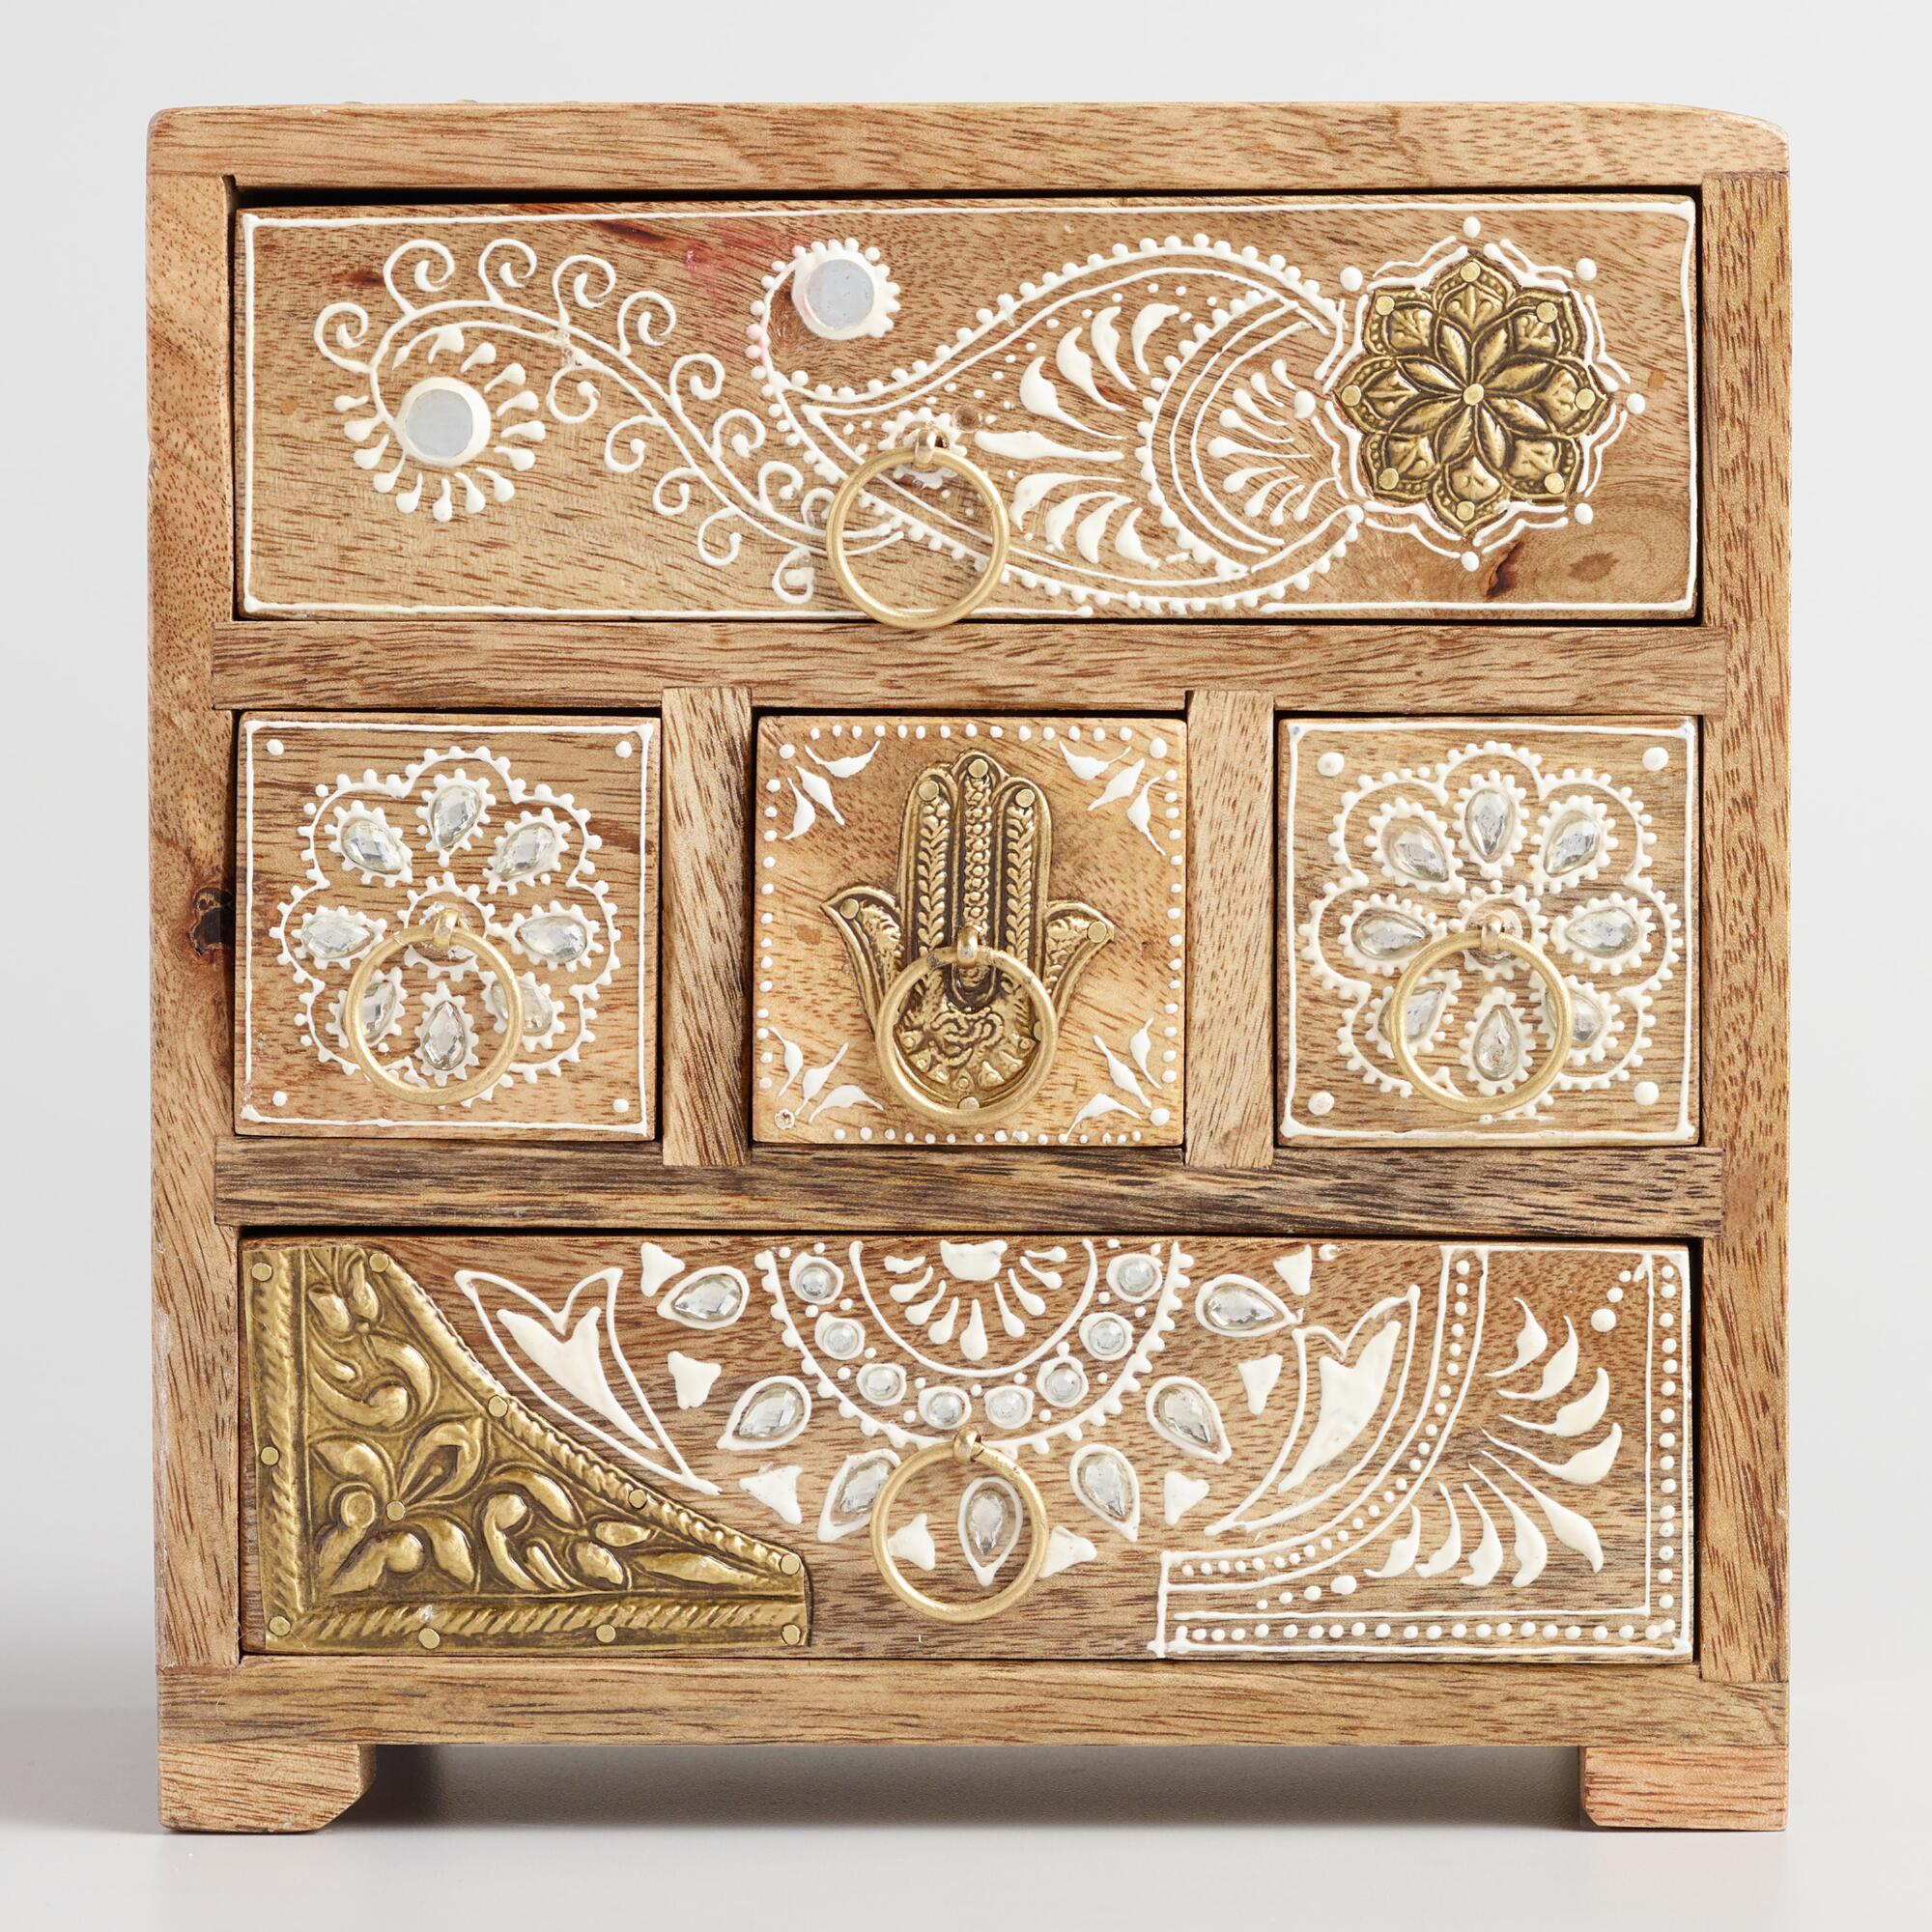 Wood and Embossed Metal Tabletop Storage Chest by World Market